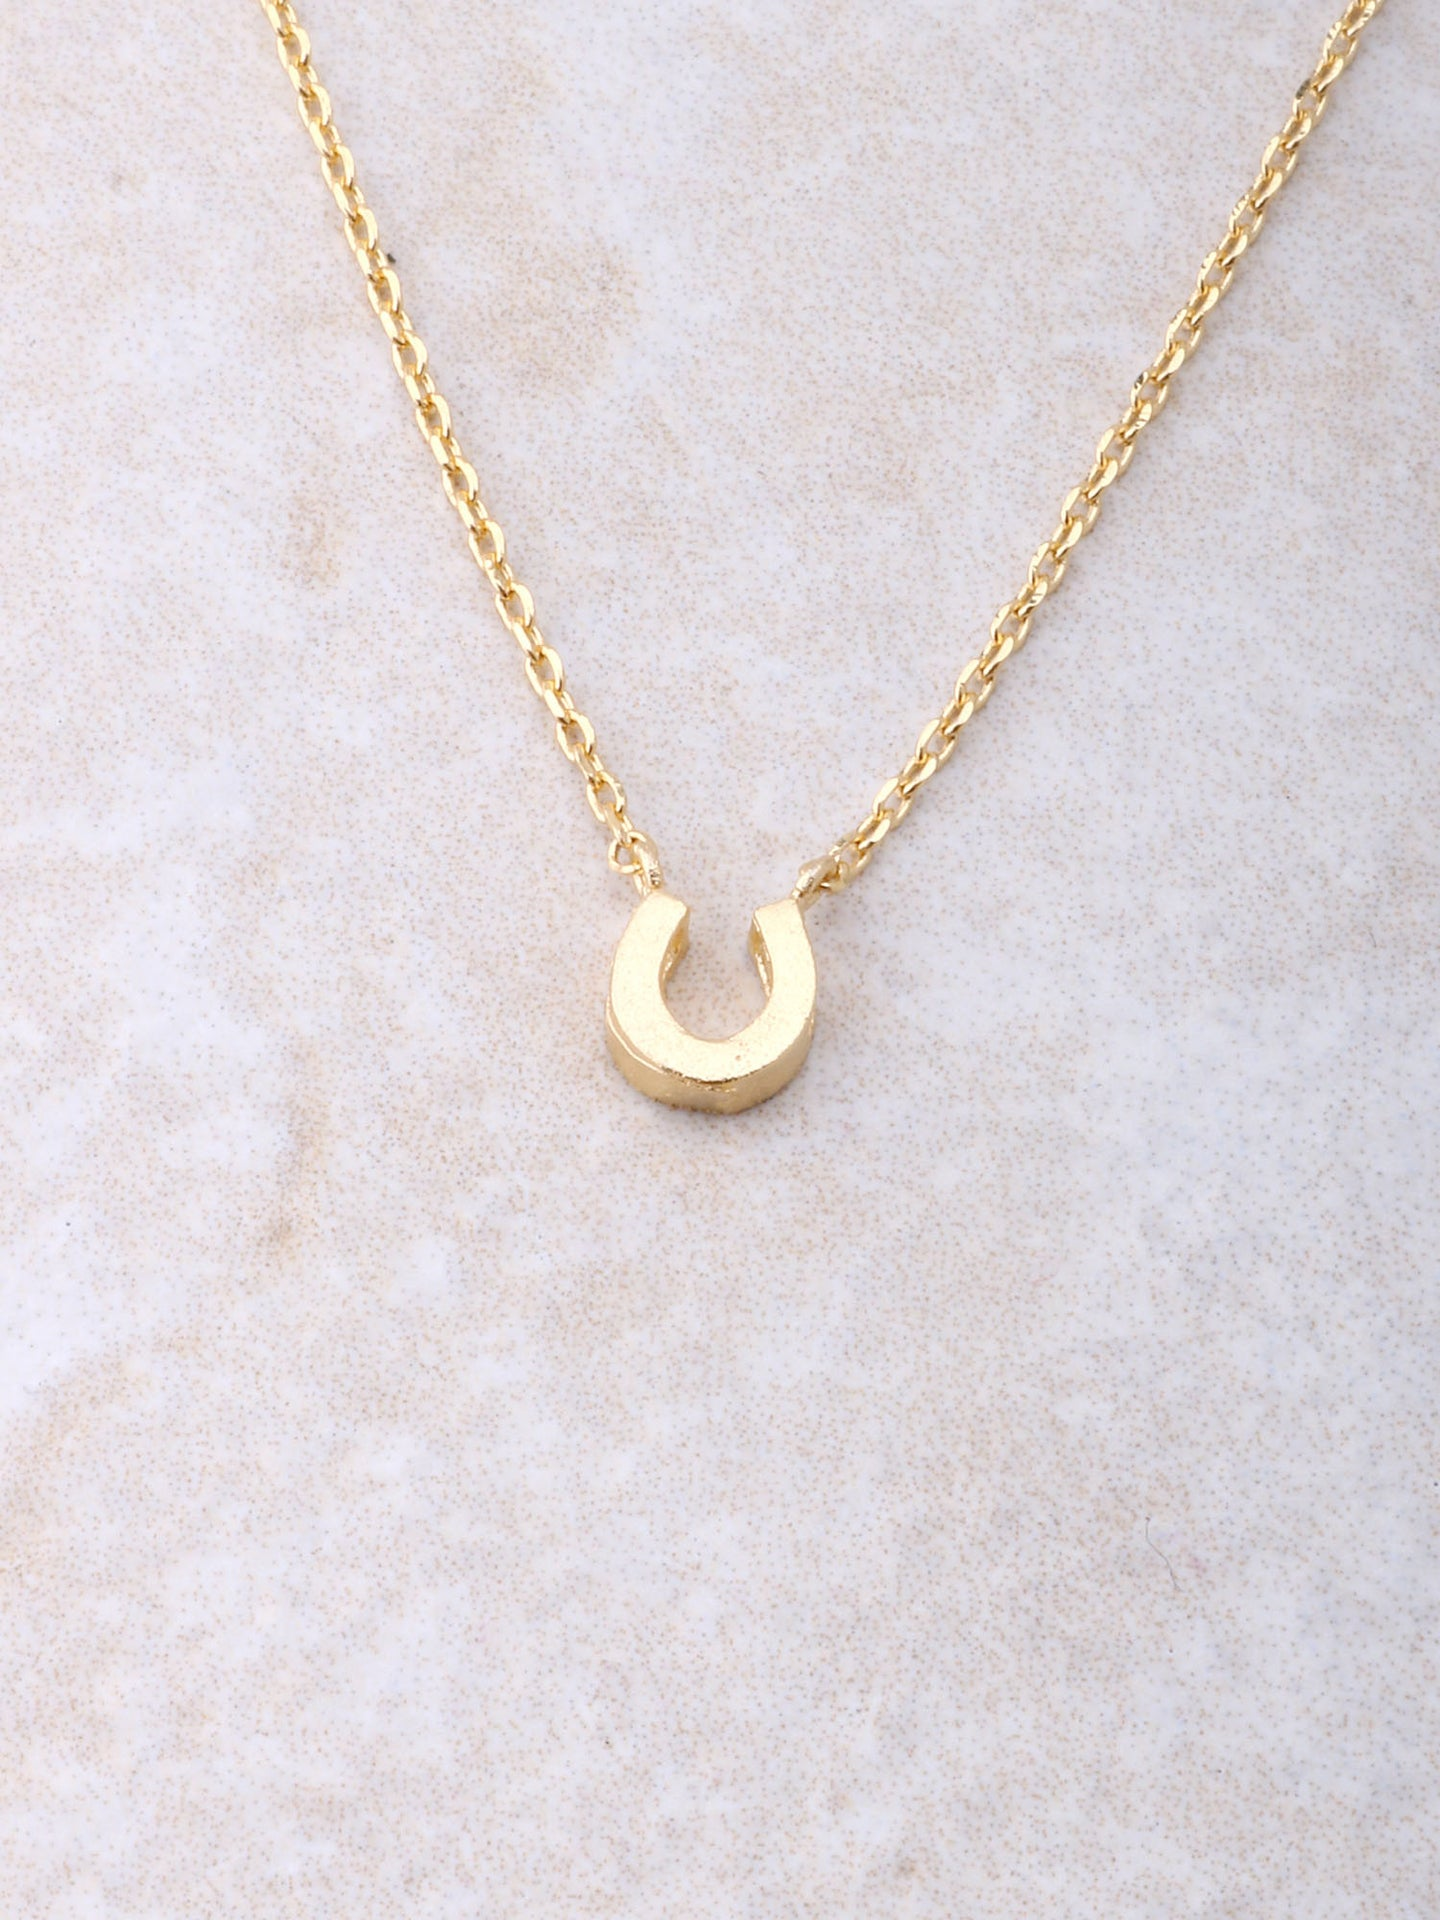 Horseshoe Necklace Anarchy Street Gold